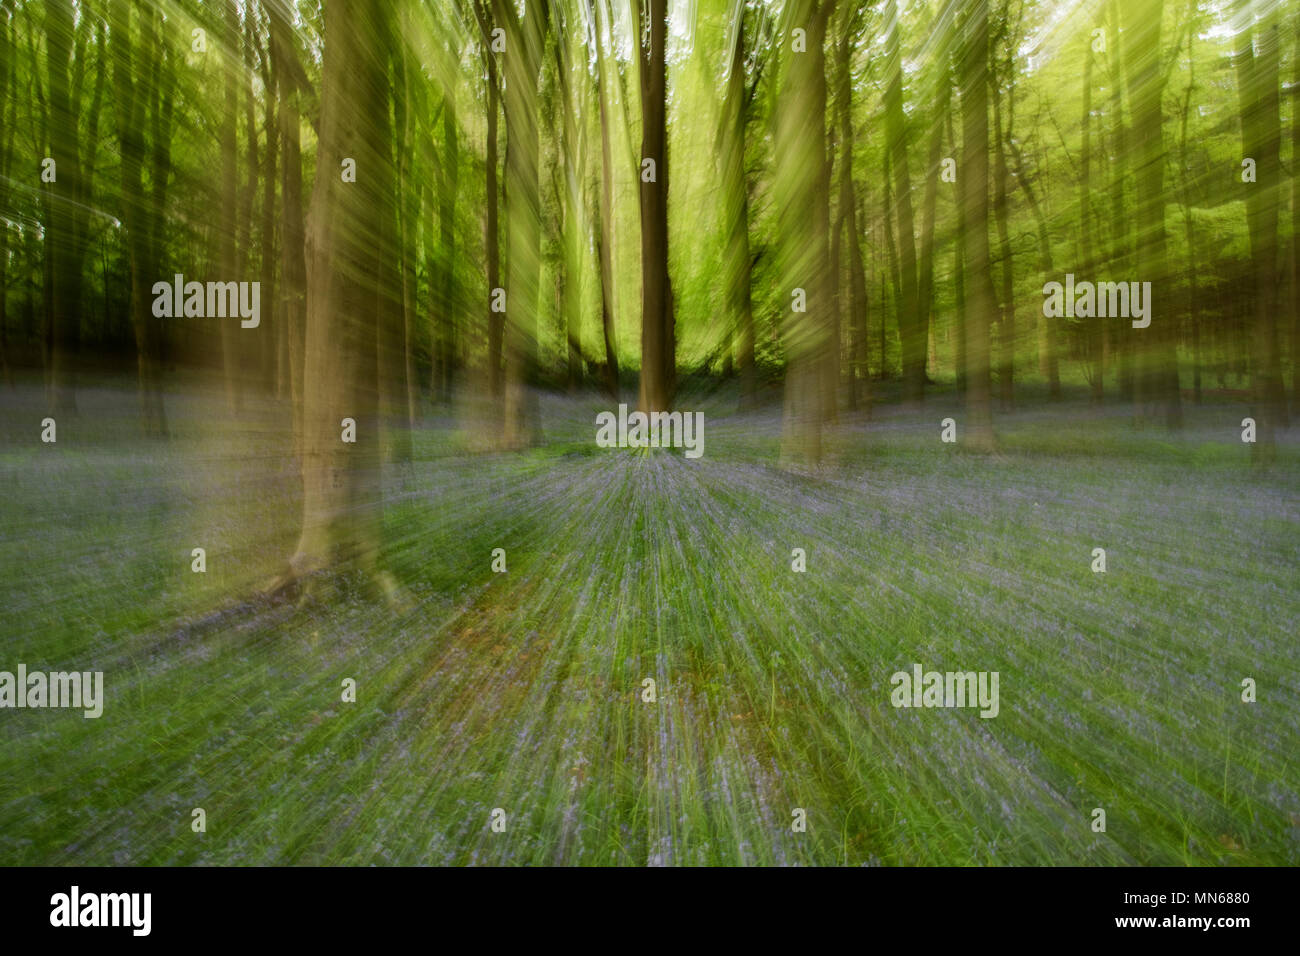 Lens zoomed effect on a woodland trees - Stock Image